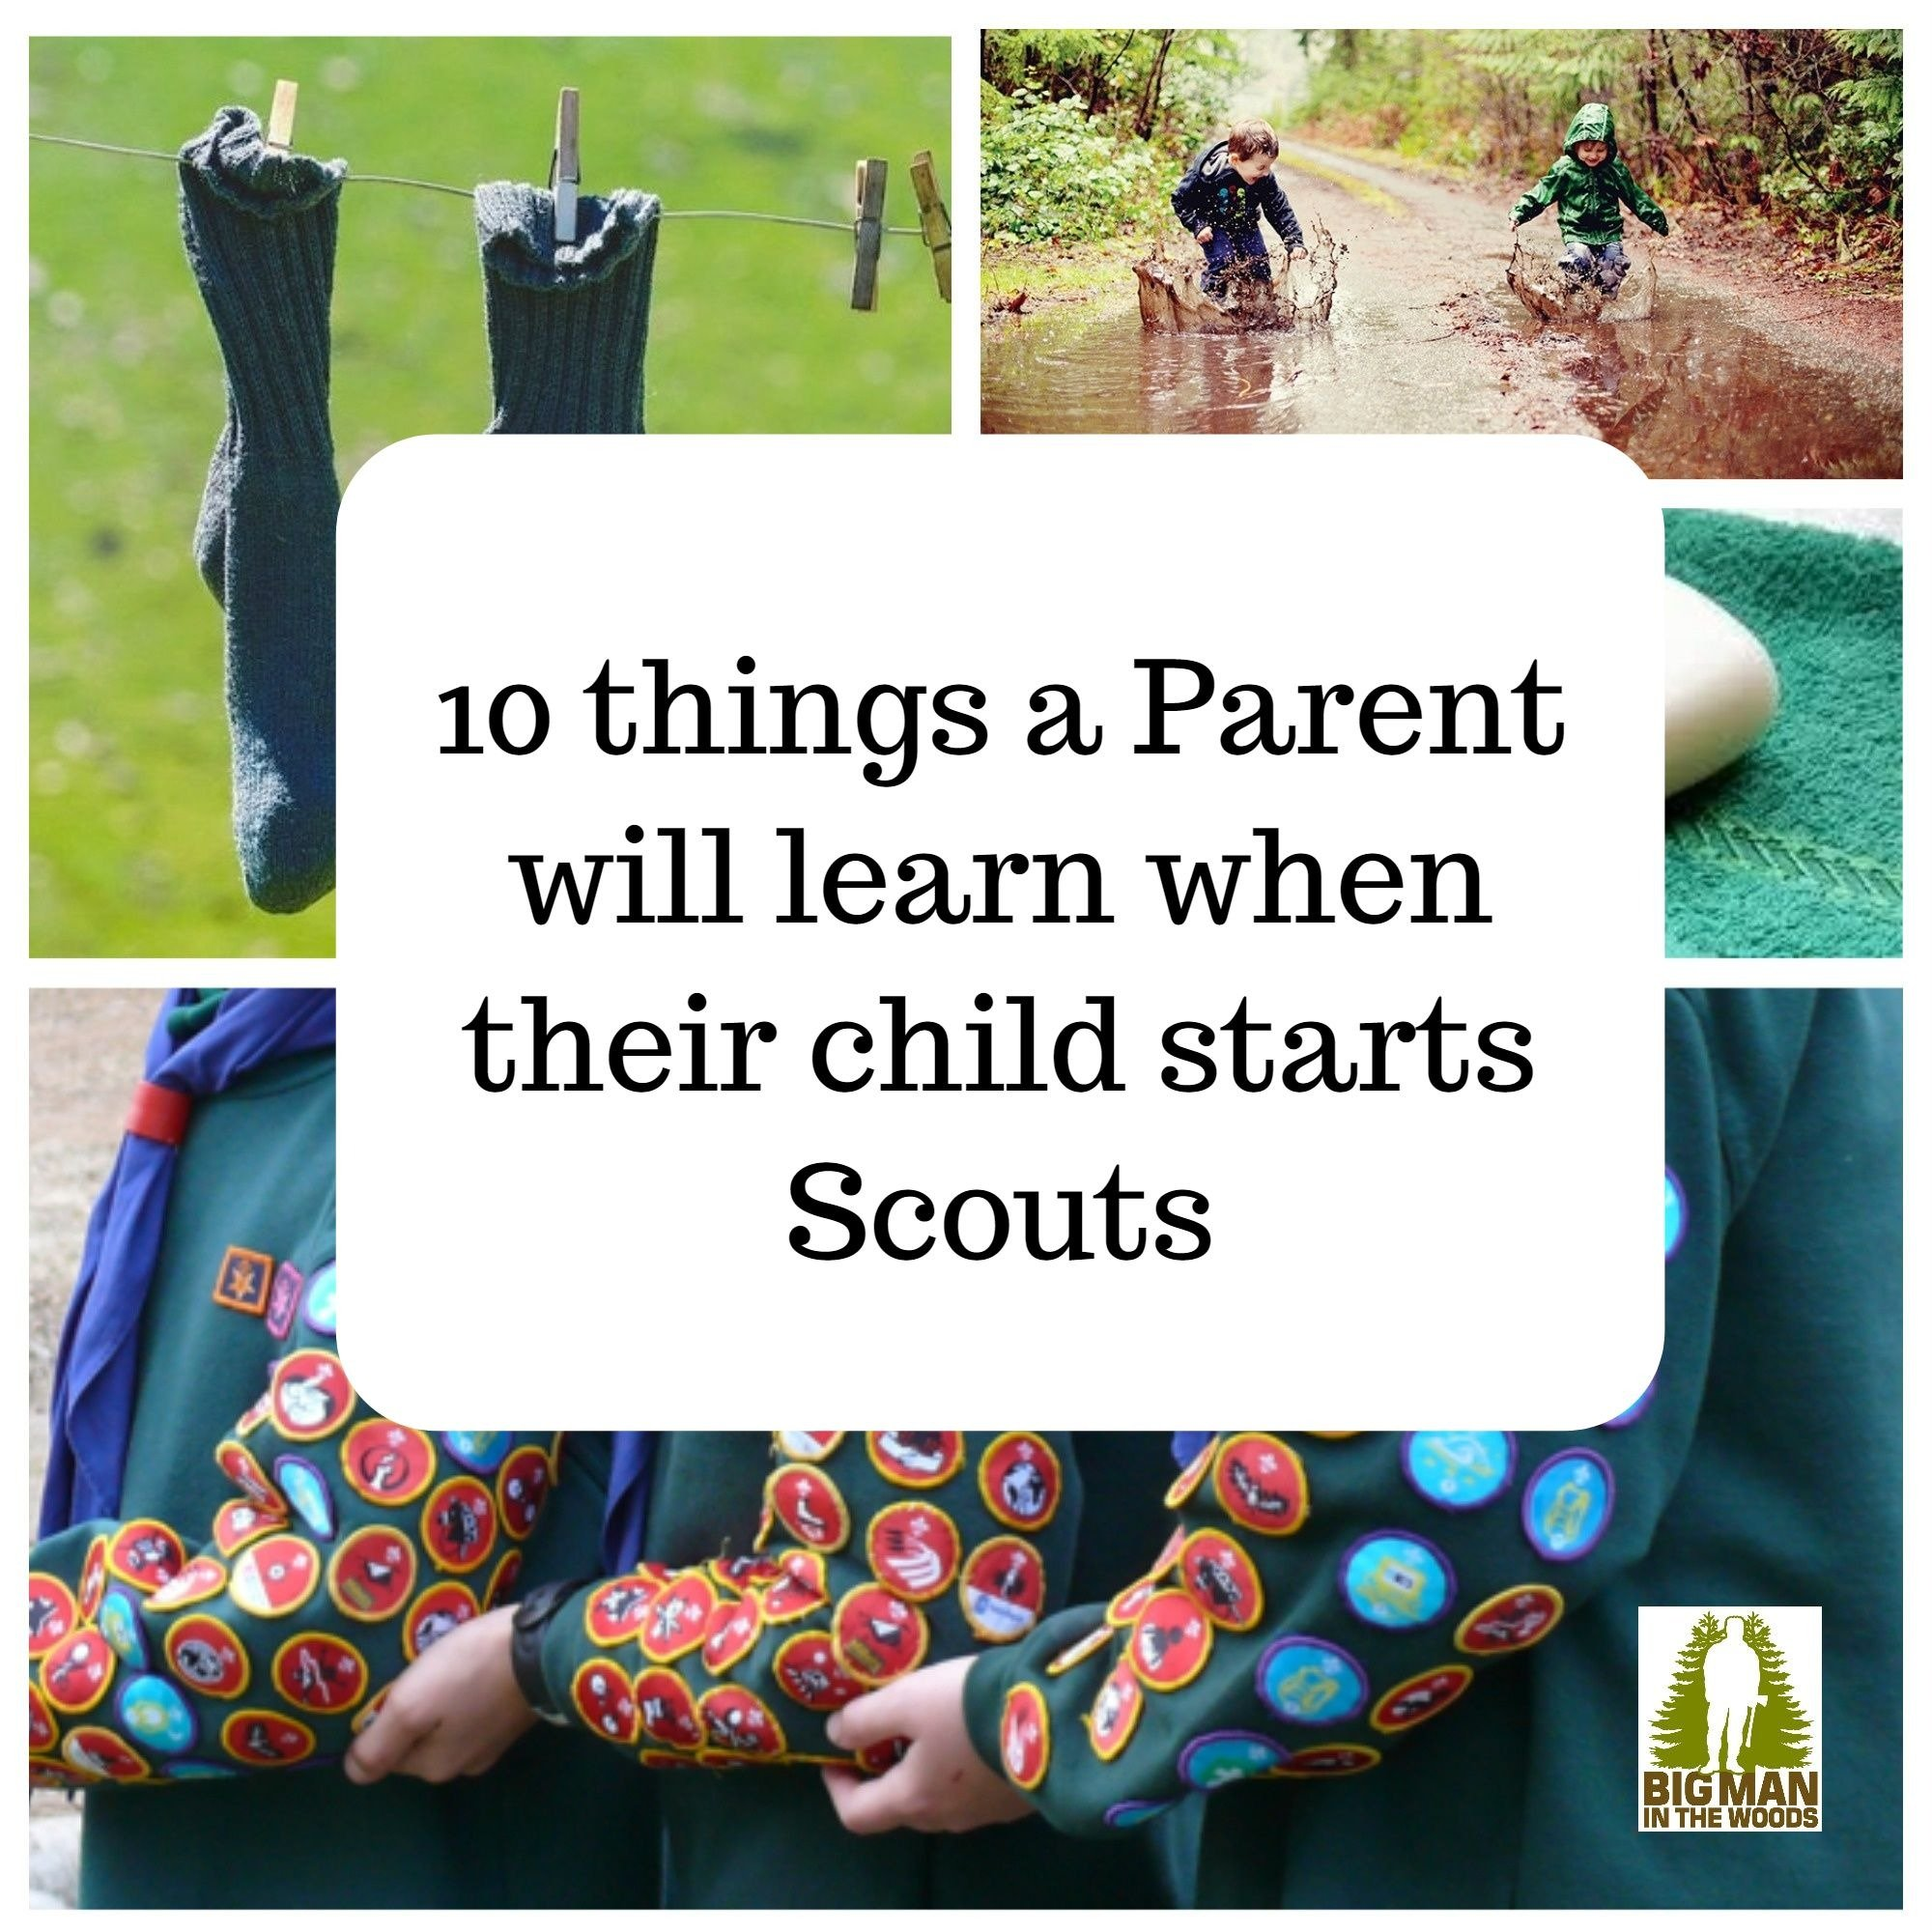 10 things you learn when your child starts Scouts